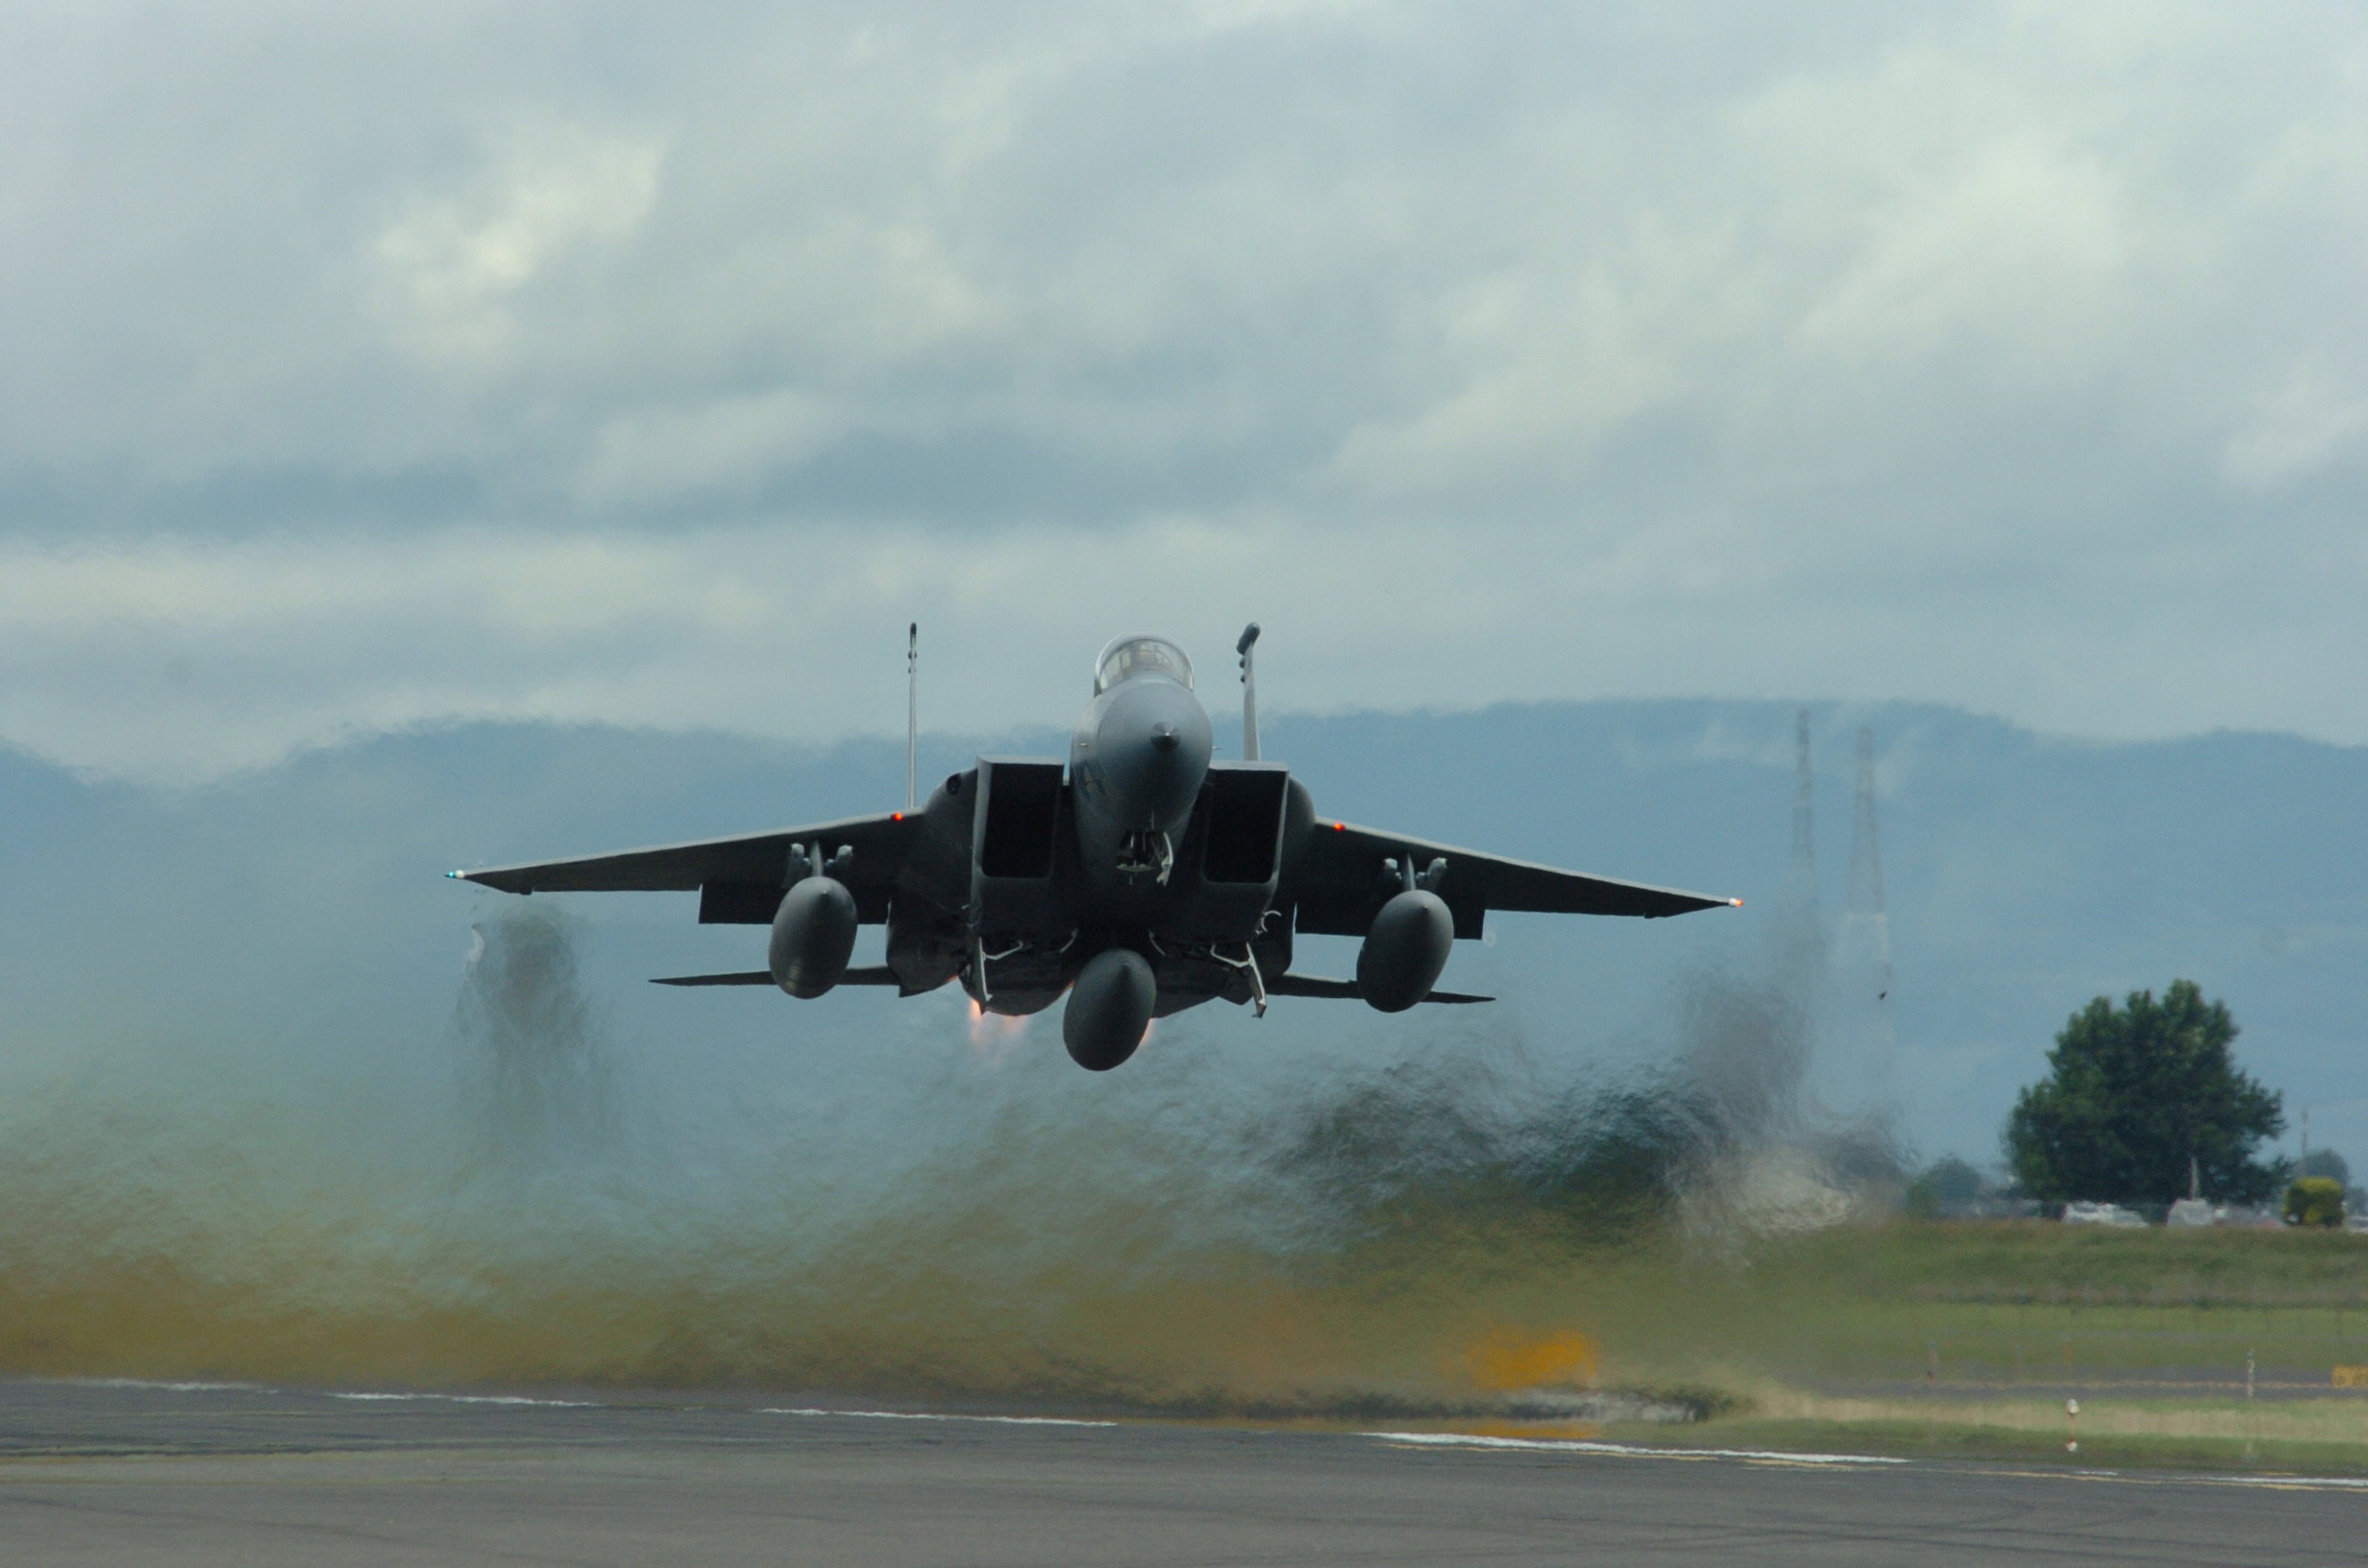 Aircraft military vehicles f-15